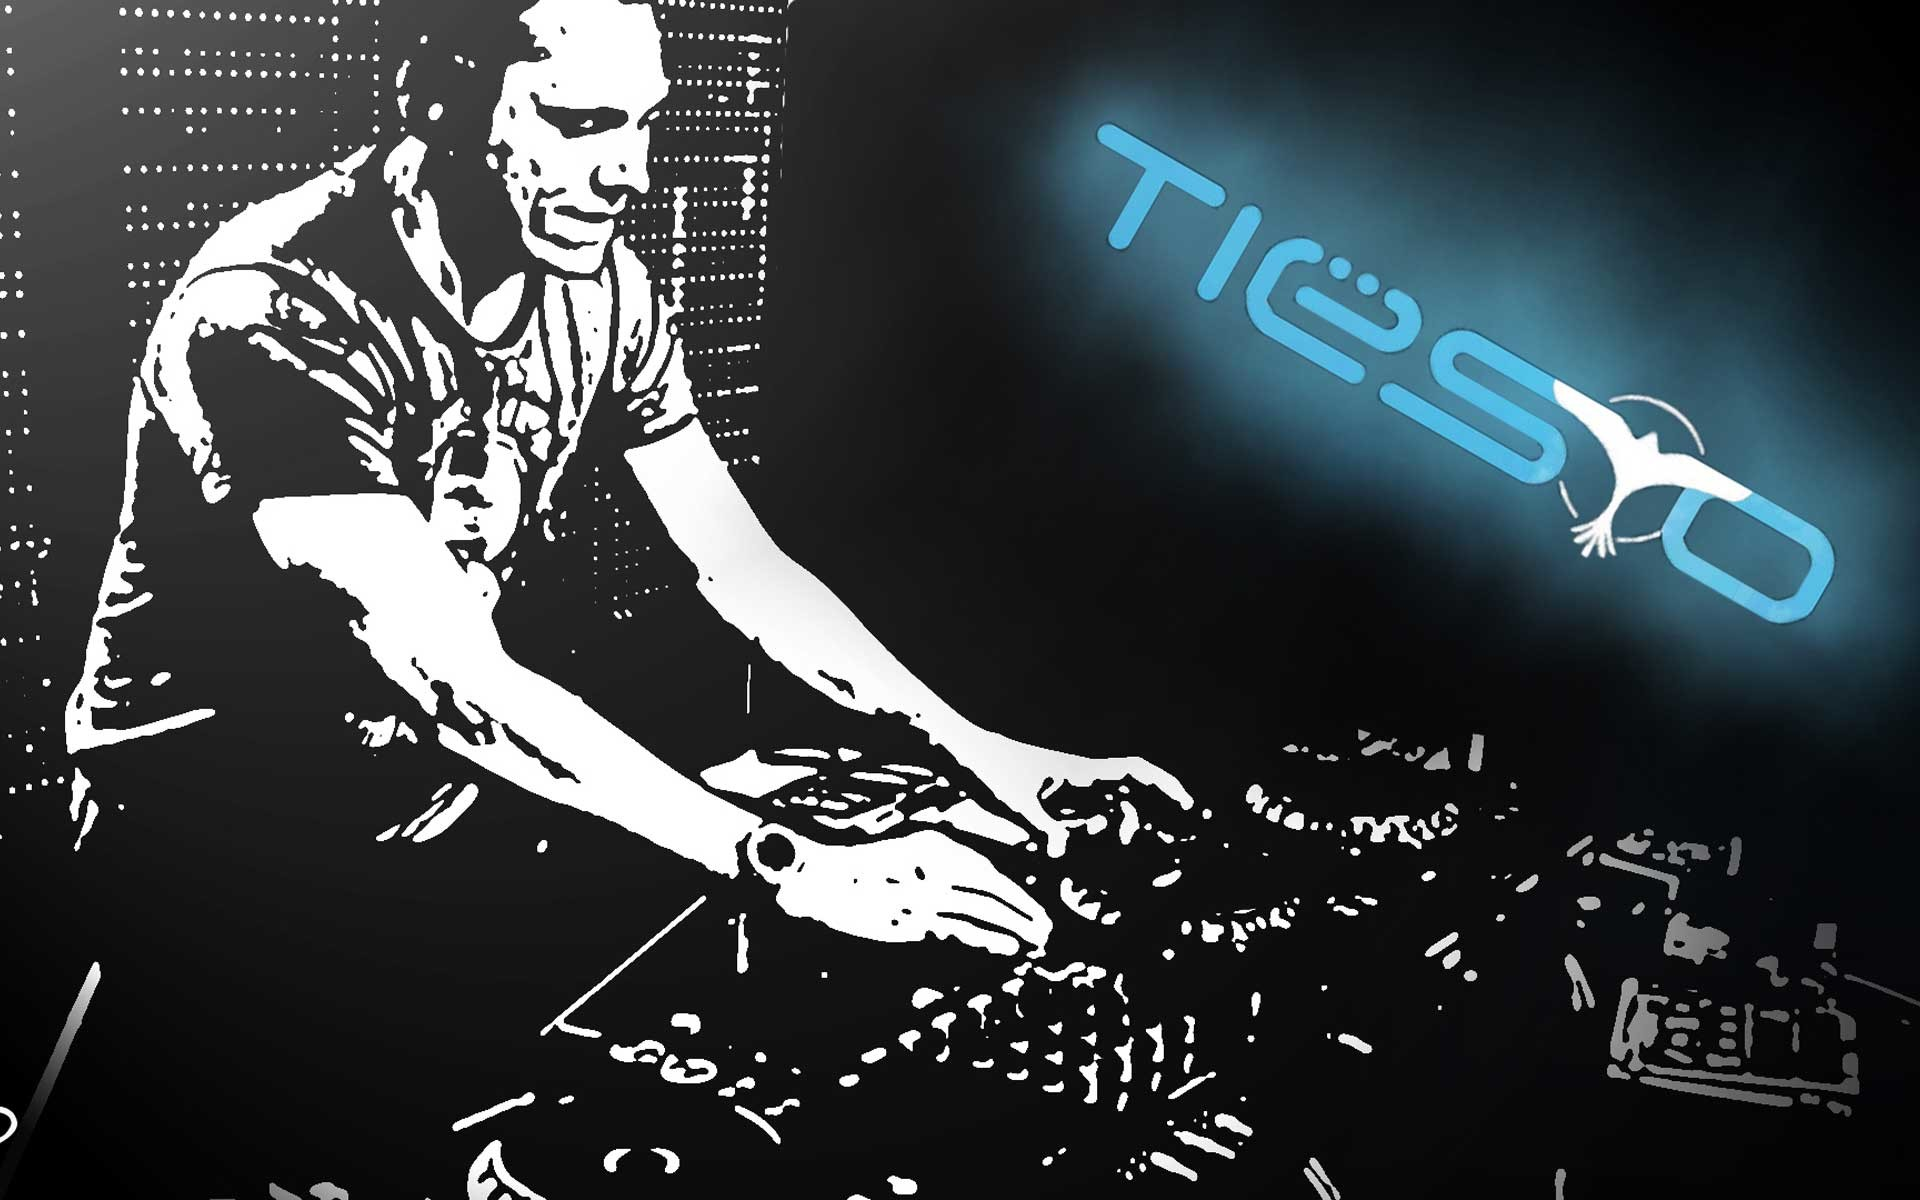 Res: 1920x1200, Tiesto Wallpaper Widescreen